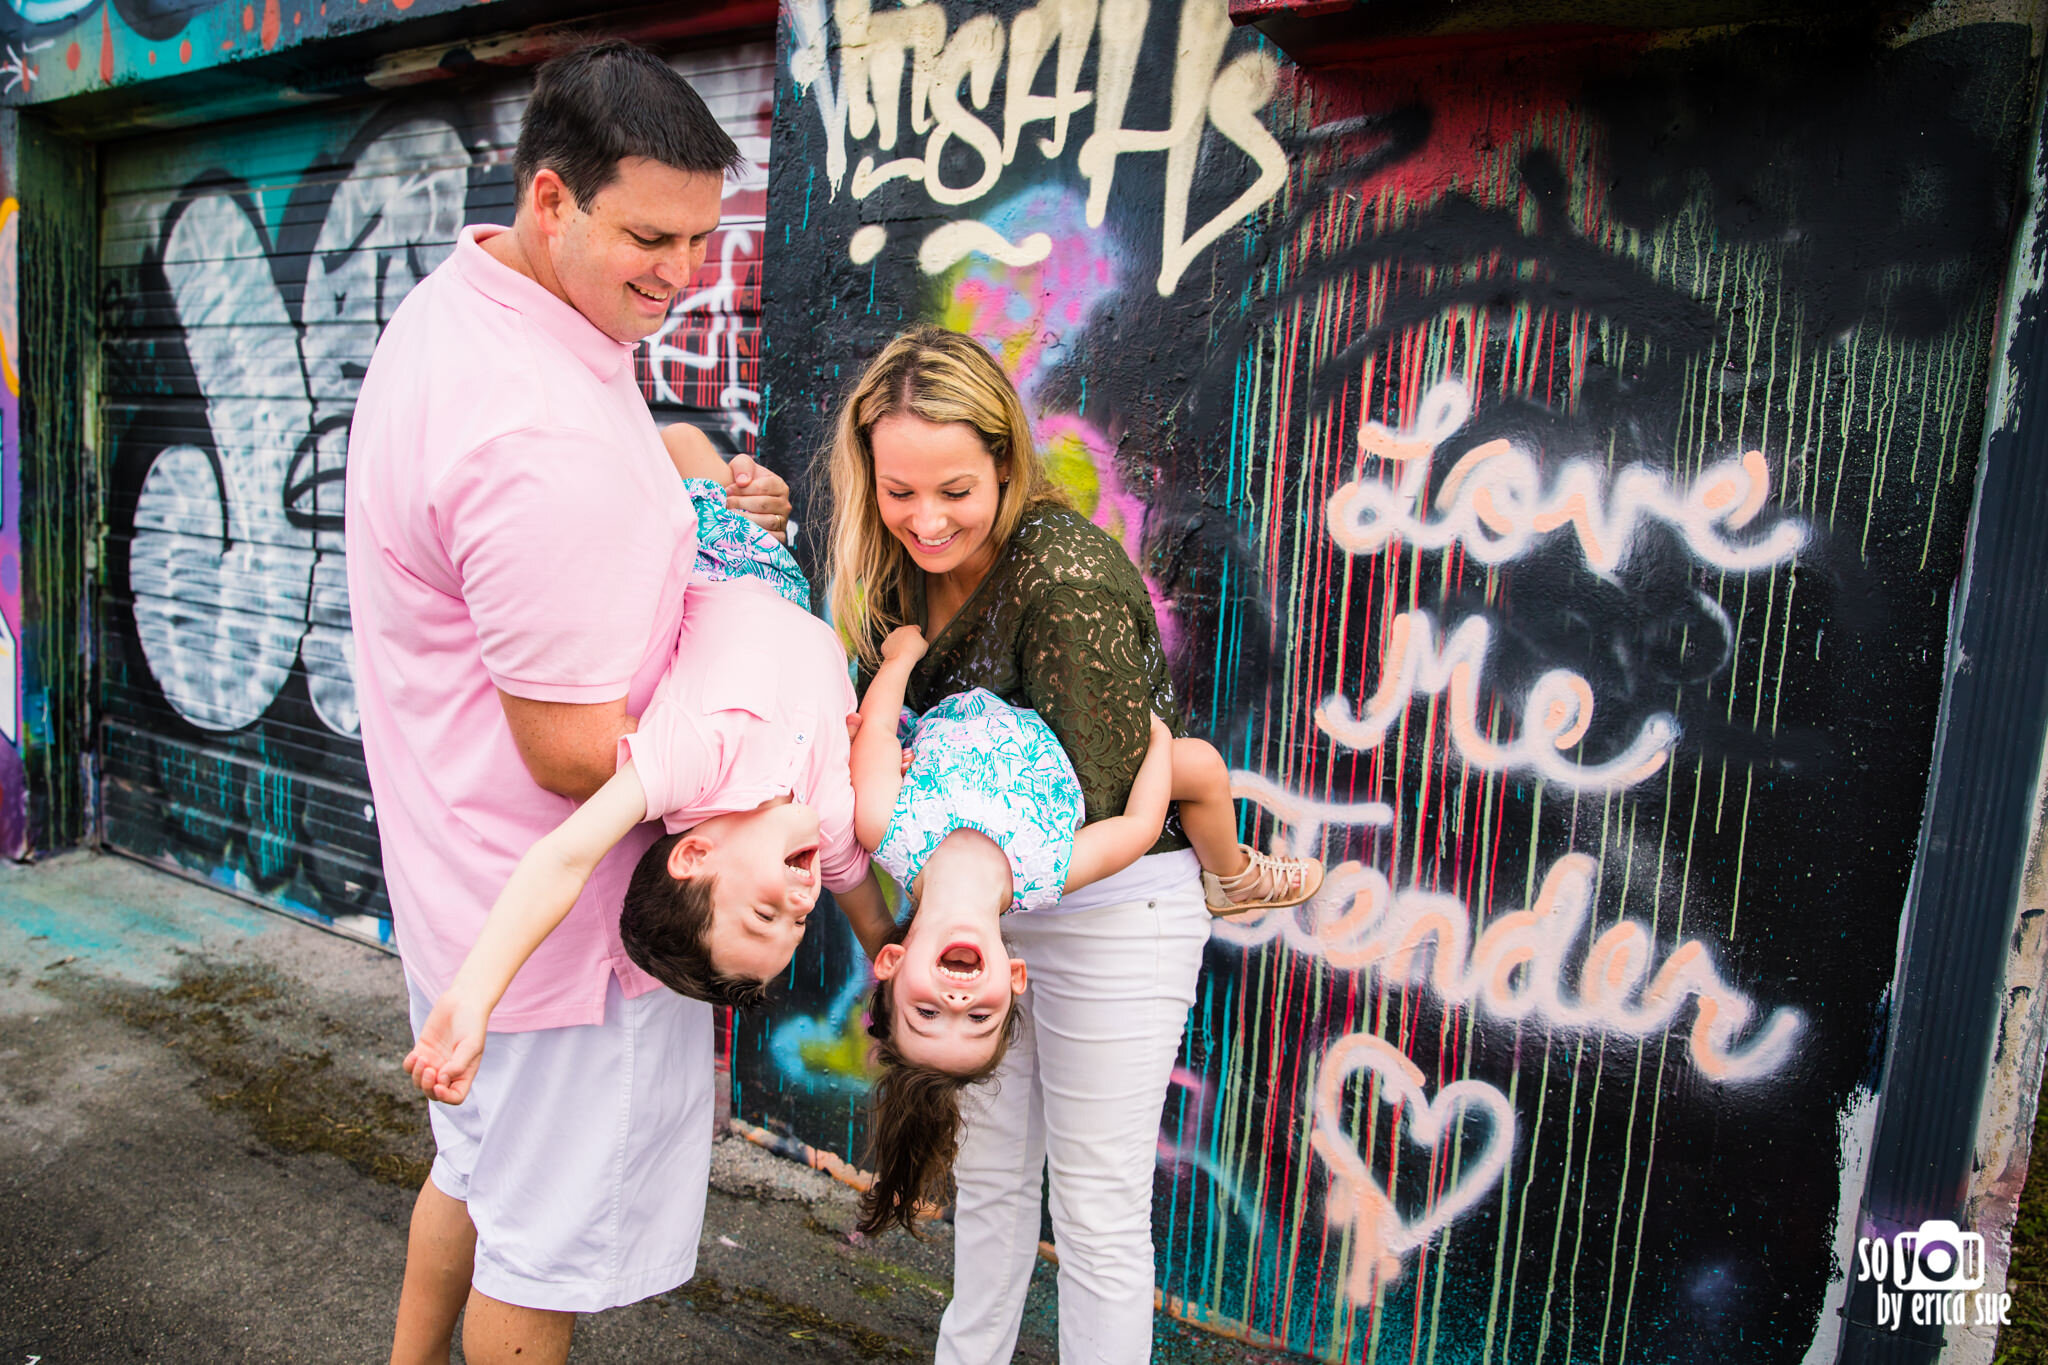 so-you-by-erica-fat-village-ft-lauderdale-murals-lifestyle-family-photographer-7414.JPG